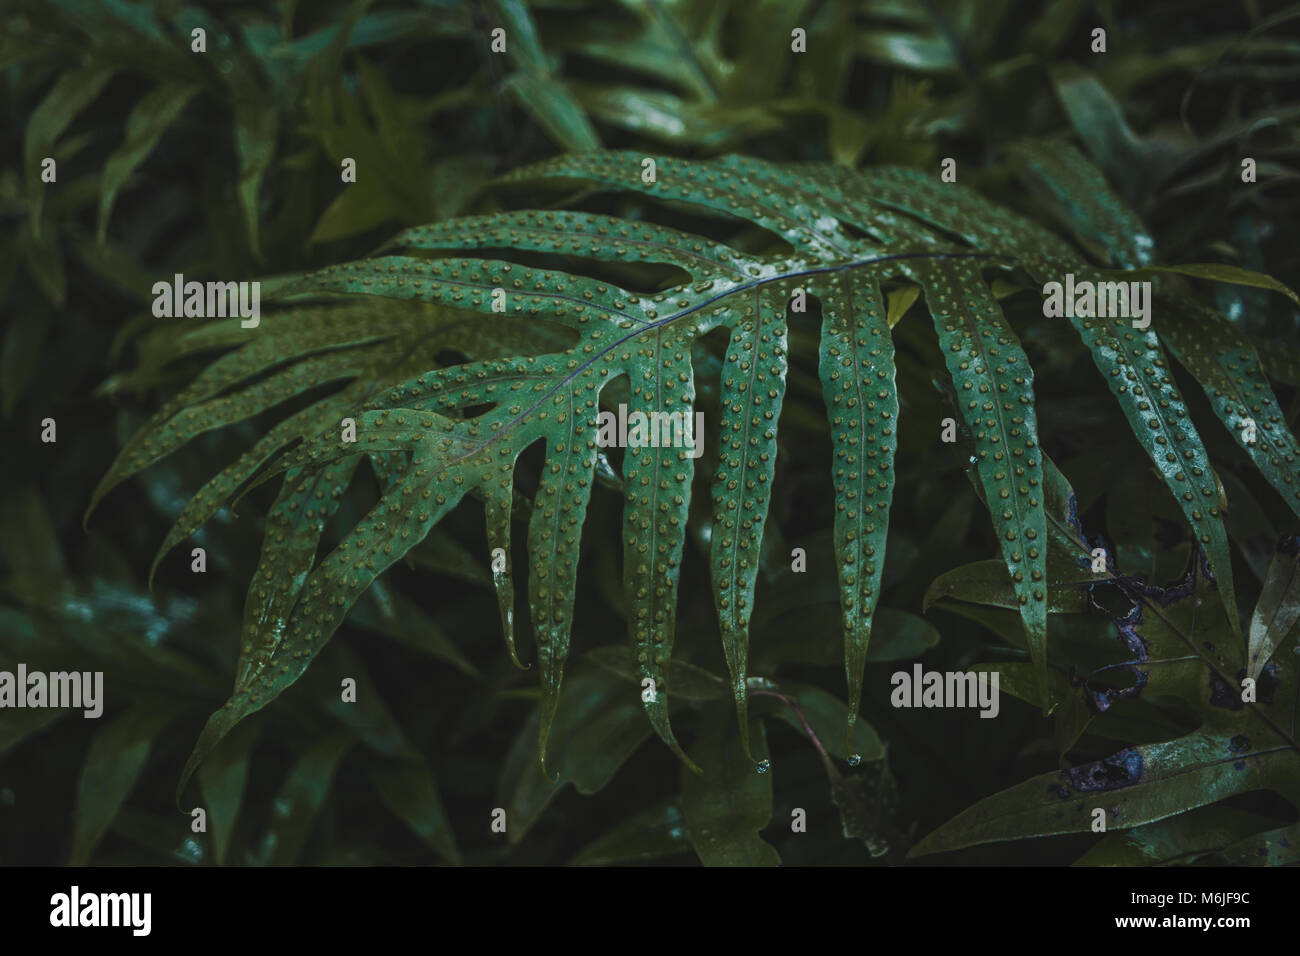 Green plant leaf with raised bumpy pores in a humid environment in Bolivia - Stock Image